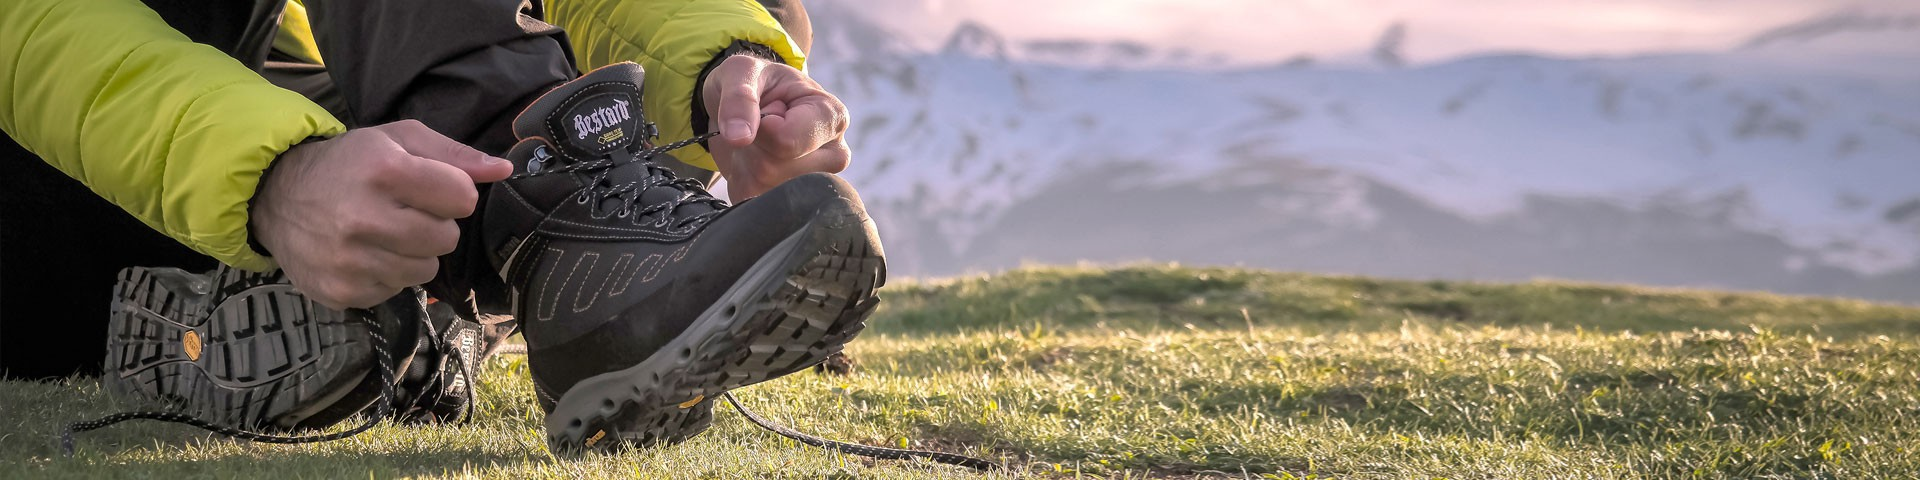 Boots and shoes accesories | BESTARD - Mountaineering, trekking and hiking Boots